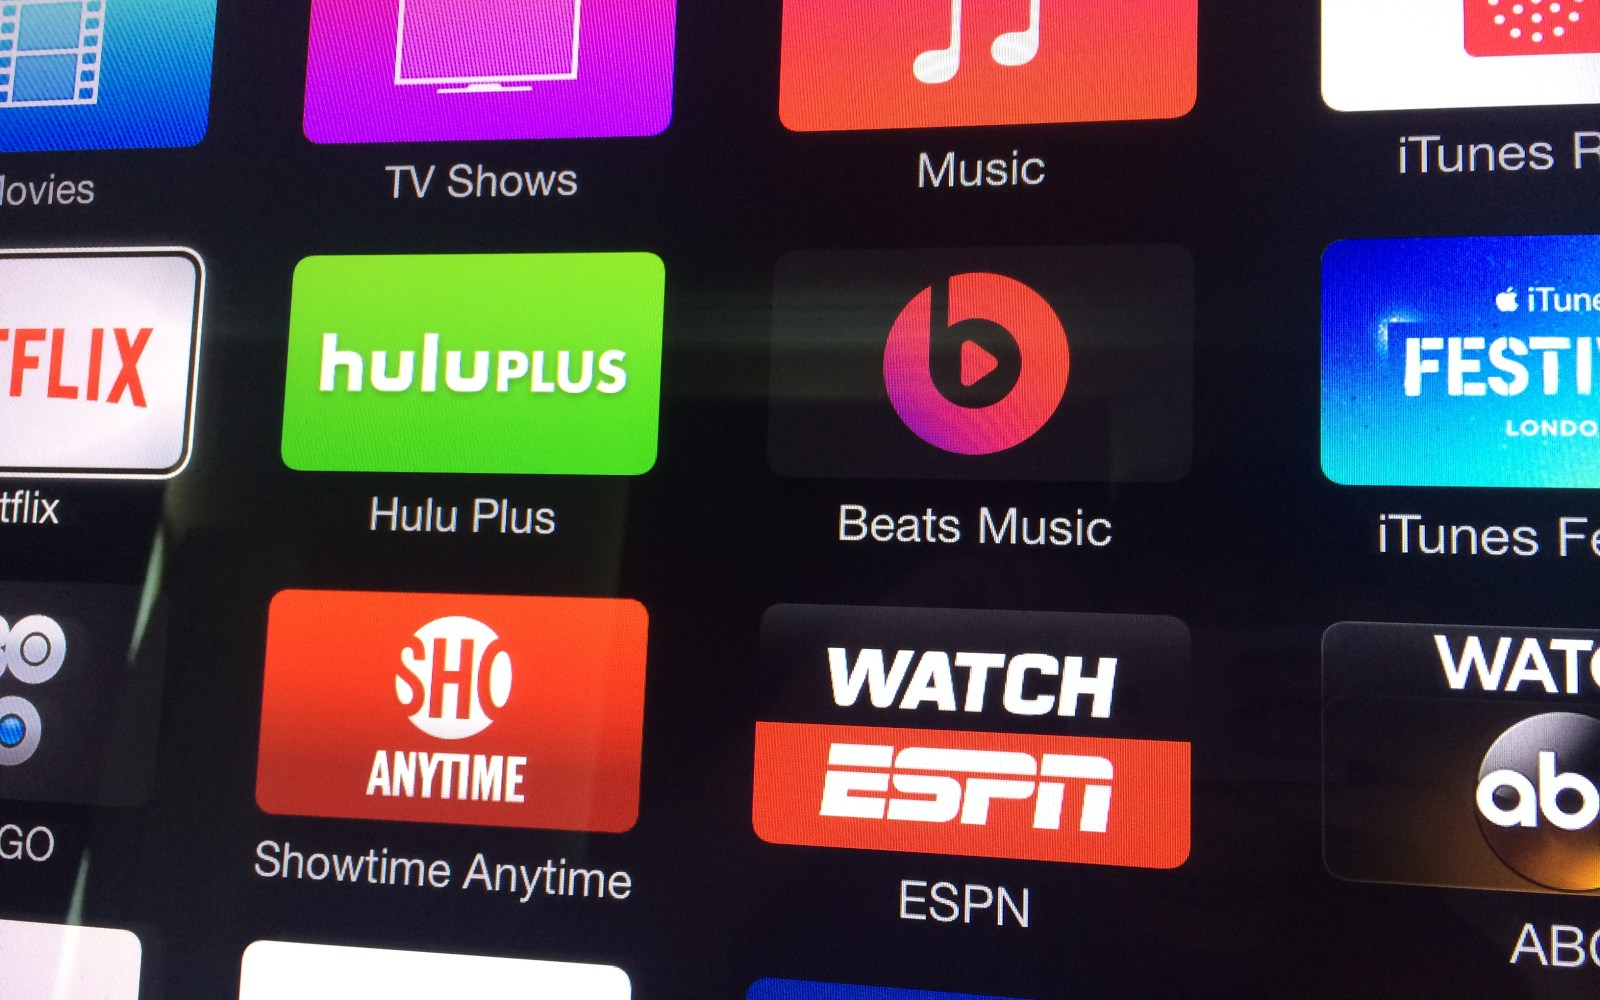 Bose reportedly planning to take on rival Beats Music with upcoming music streaming platform